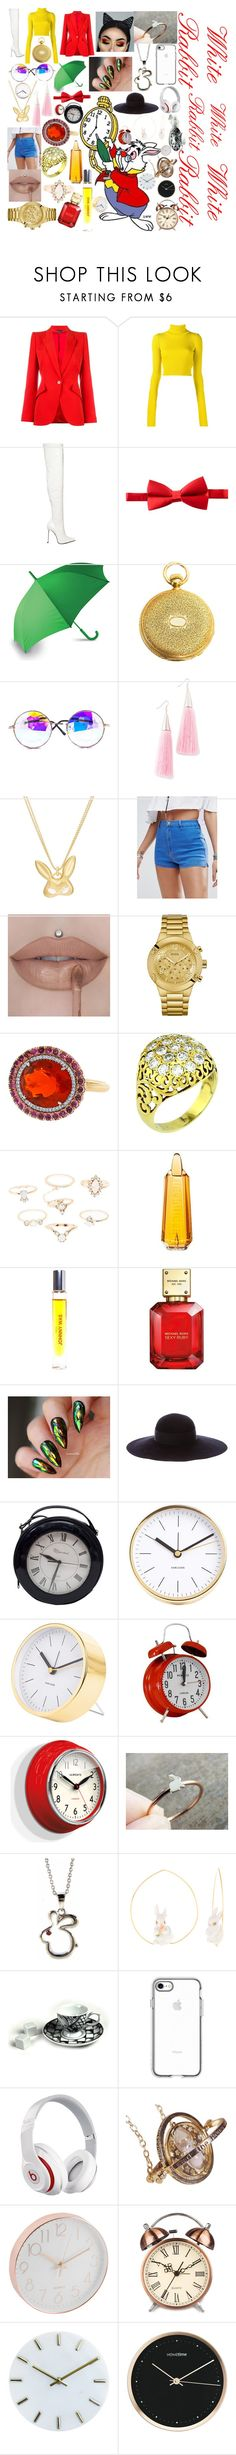 """""""White Rabbit"""" by oobabydolloo ❤ liked on Polyvore featuring Disney, Alexander McQueen, Jacquemus, Le Silla, Michelsons, LEXON, Eddie Borgo, Finn, Missguided and GUESS"""